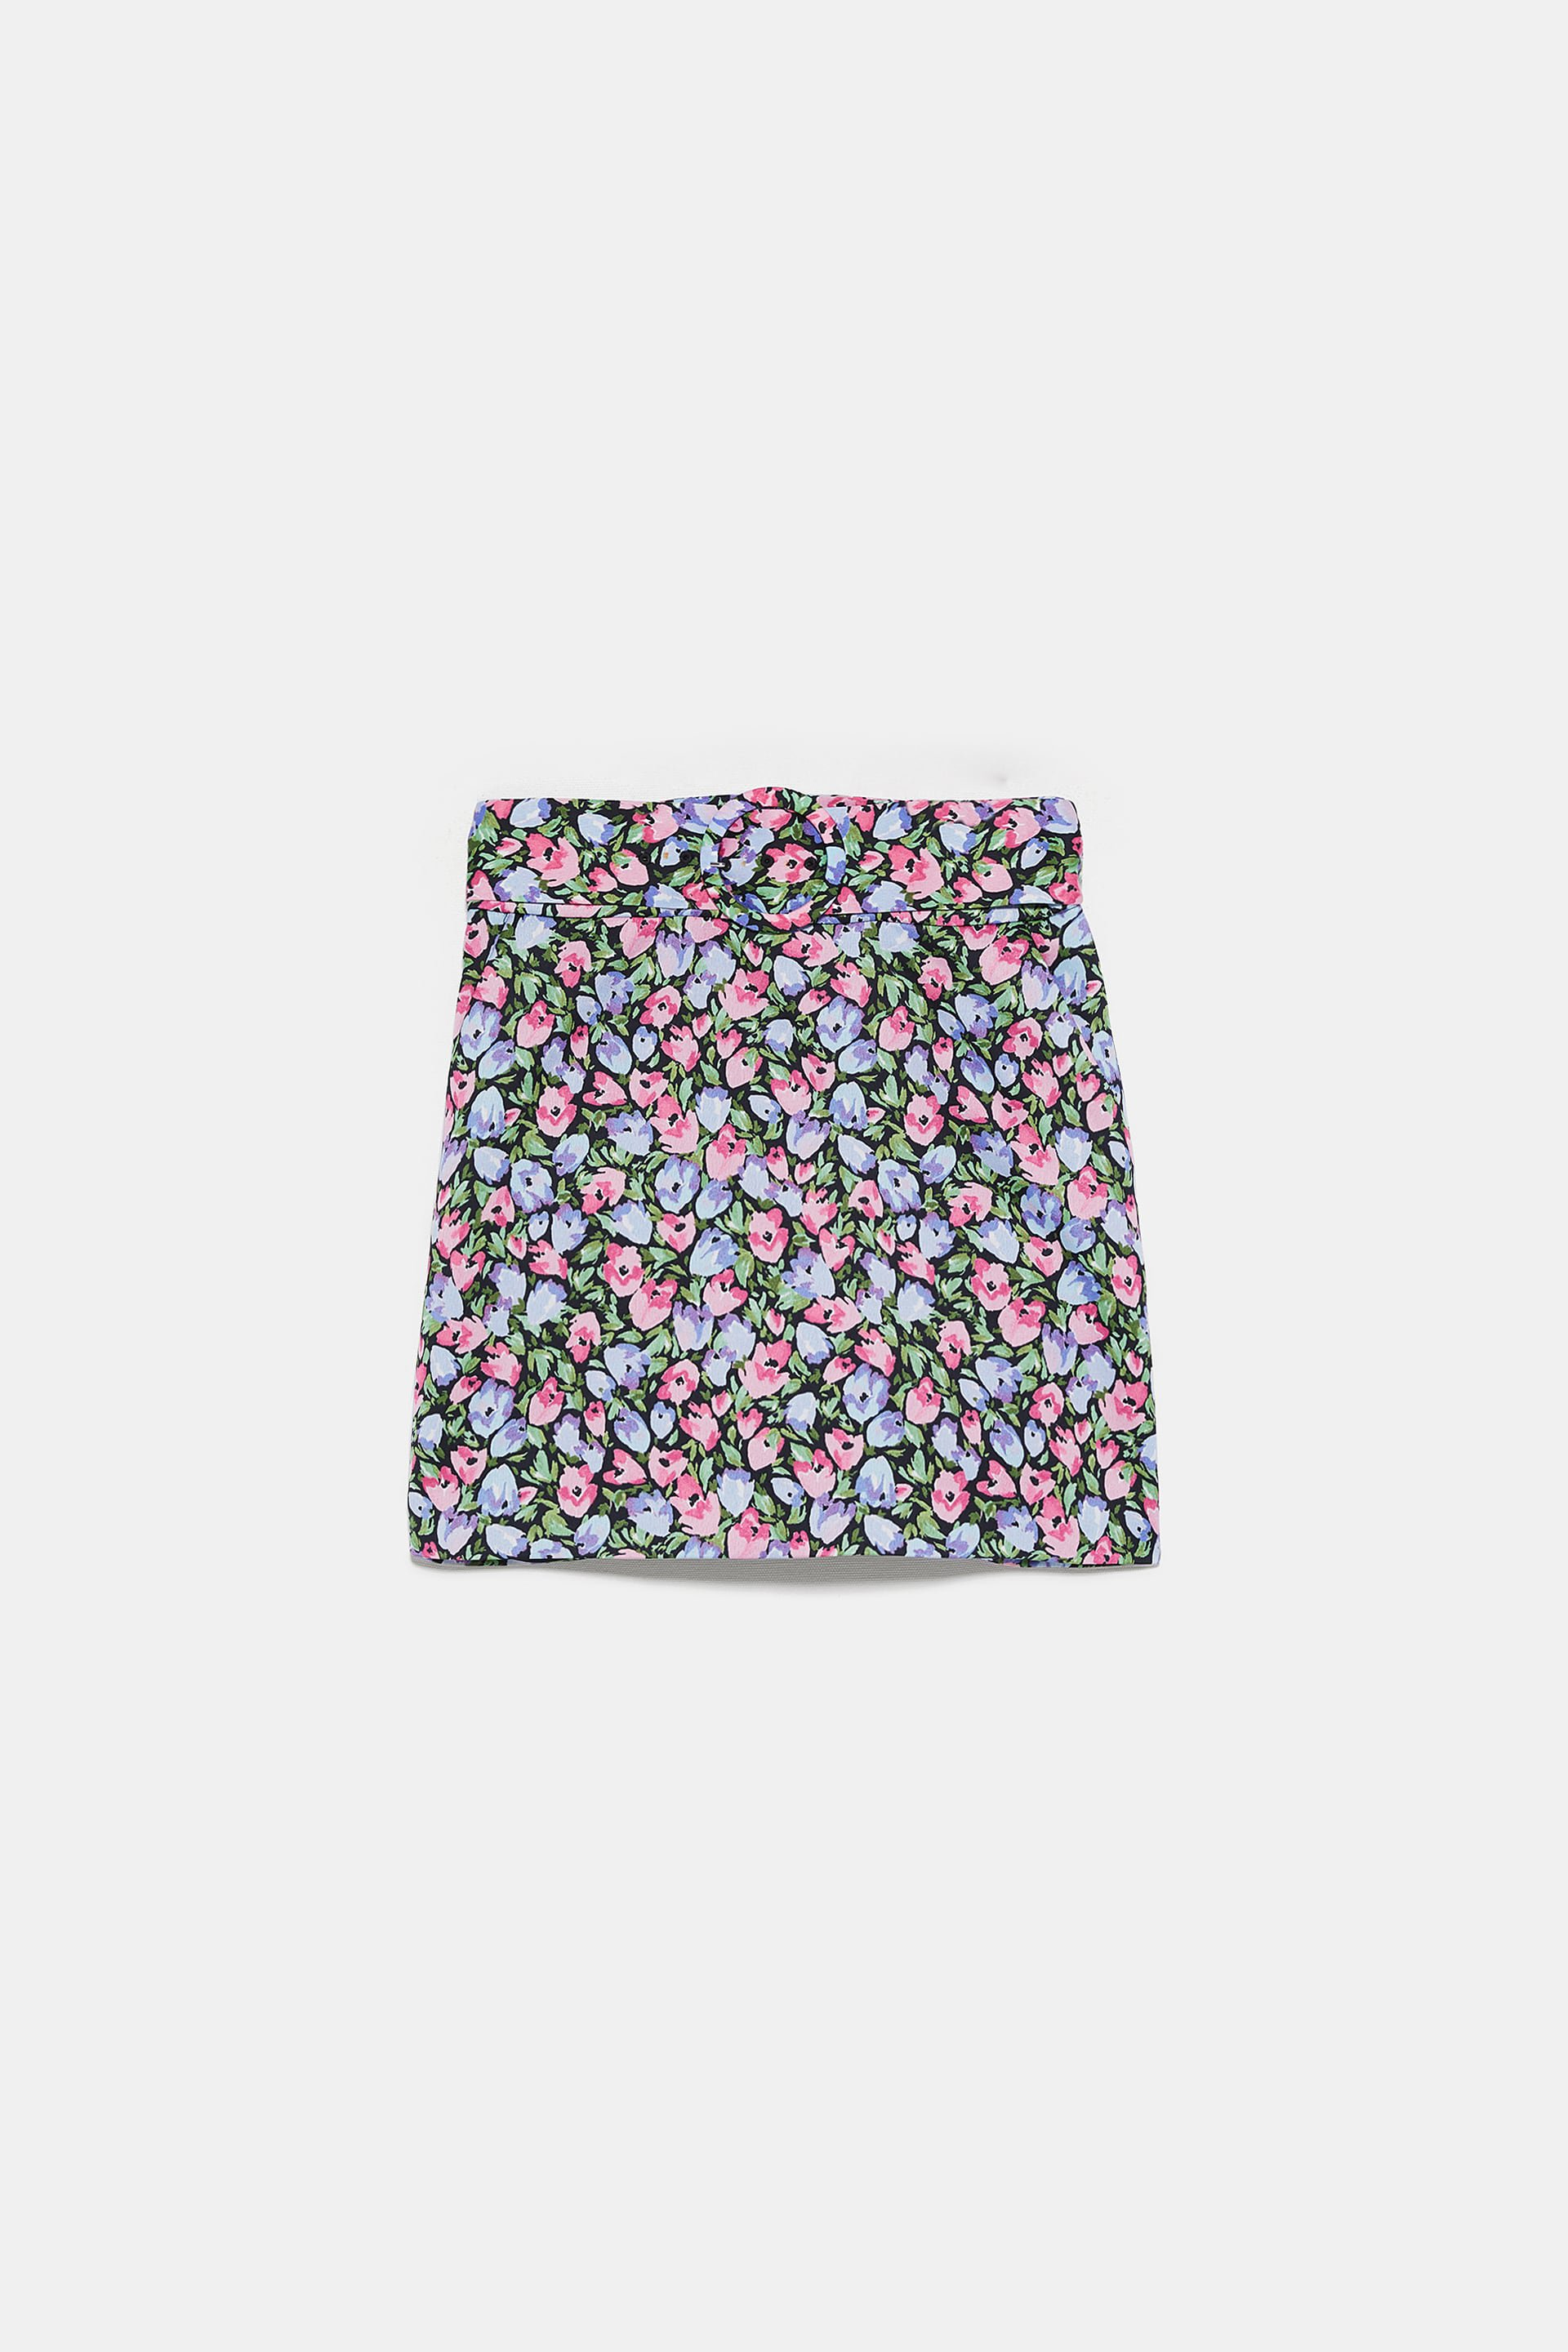 FLORAL PRINTED SKIRT - View All-SKIRTS-WOMAN | ZARA United States